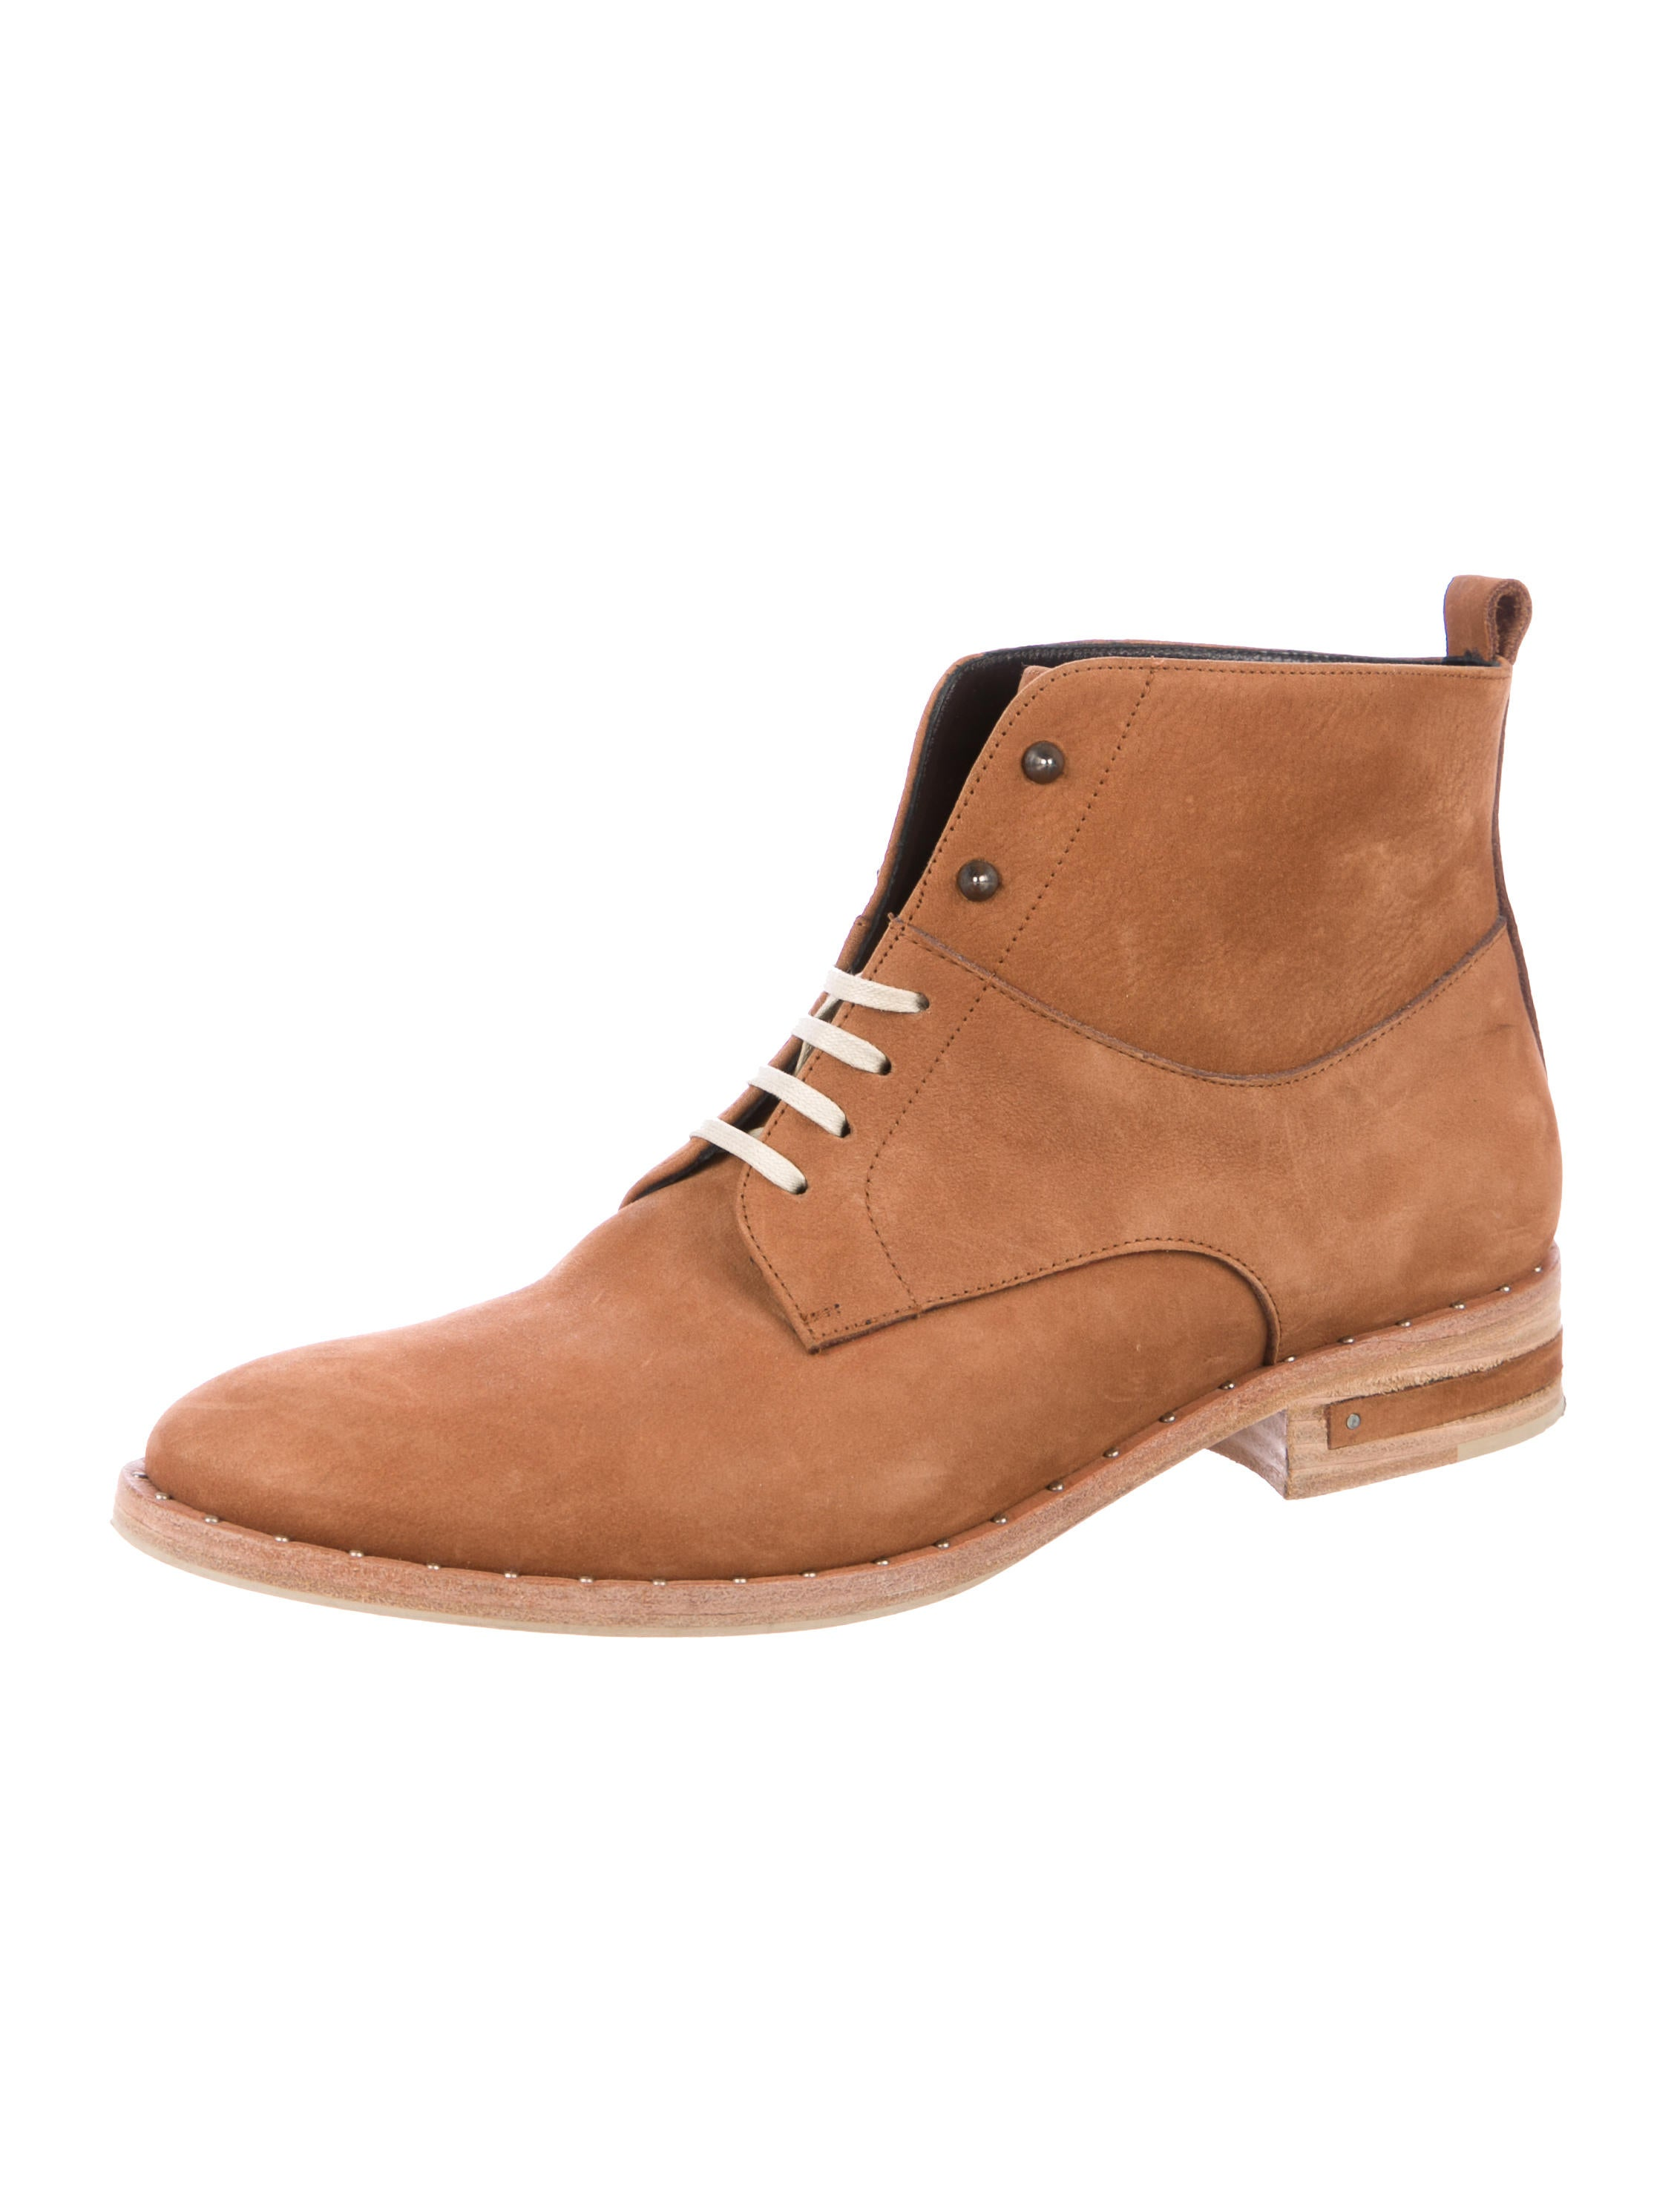 Women Shoes Faux Suede Lace-up Booties Ankle Desert Boots. from $ 23 99 Prime. out of 5 stars 5. YZHYXS. Leather Ankle Boots for Women Cow Leather Lace Up Fashion Flats Short Booties Casual Shoes. from $ 25 90 Prime. out of 5 stars LAICIGO.